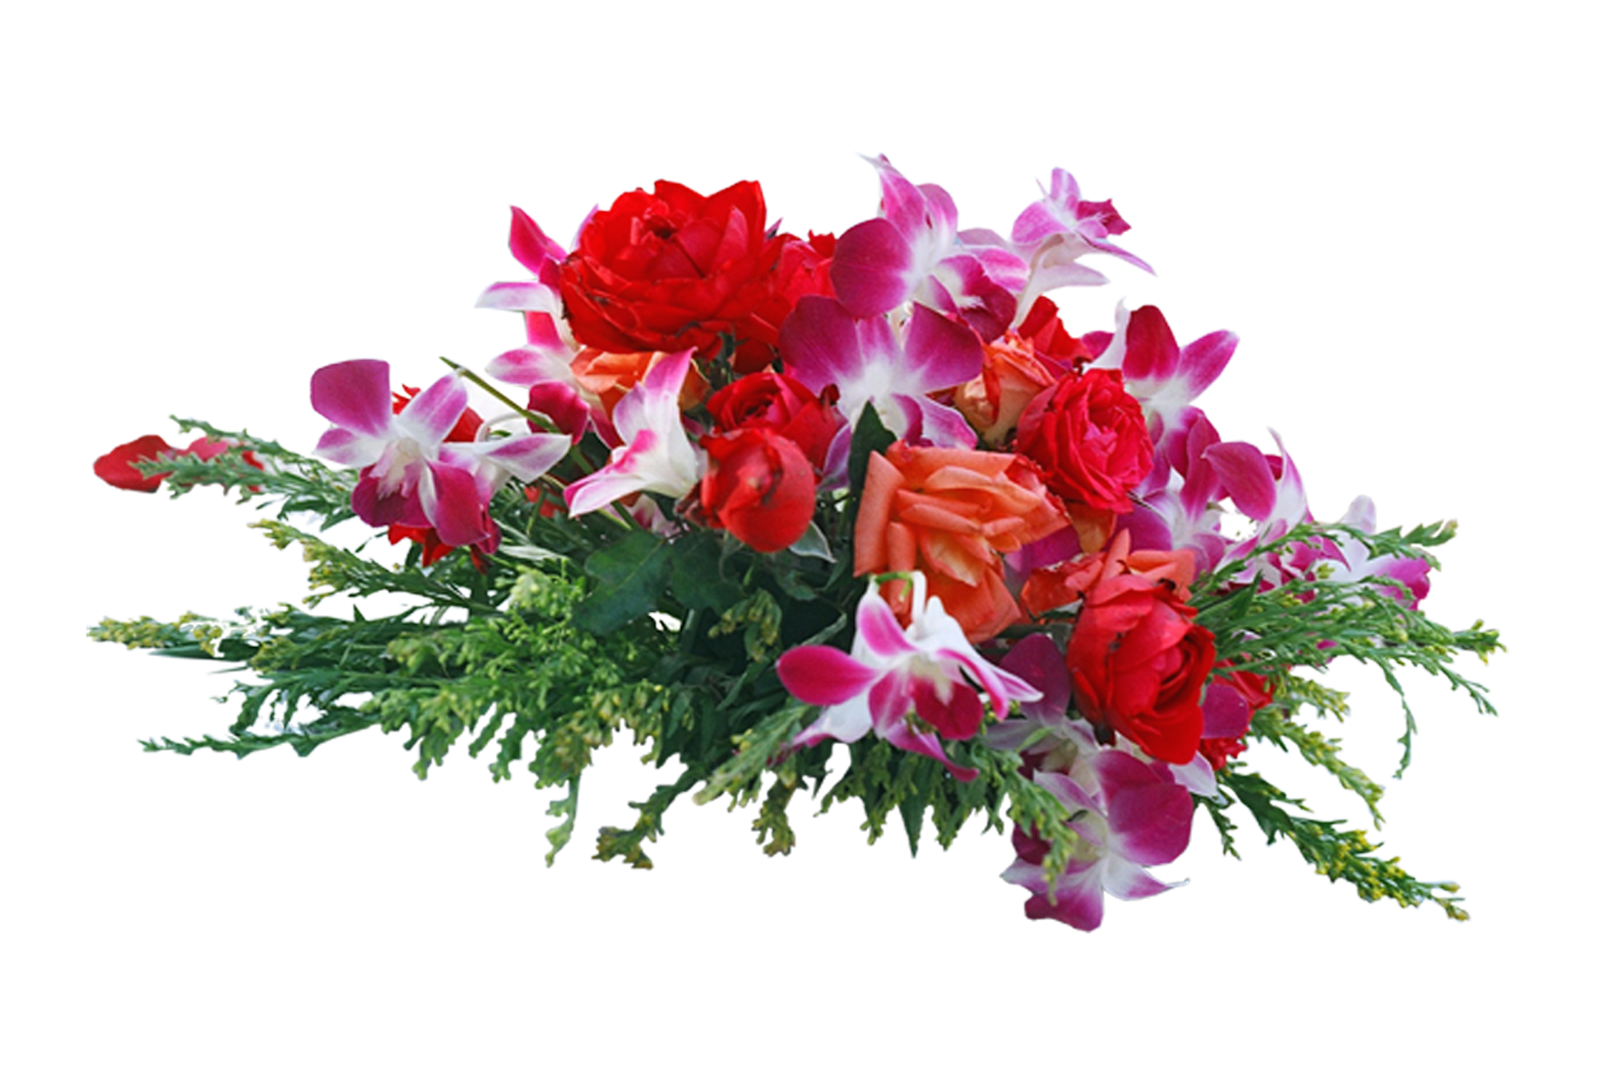 Png flower. Wedding flowers image with